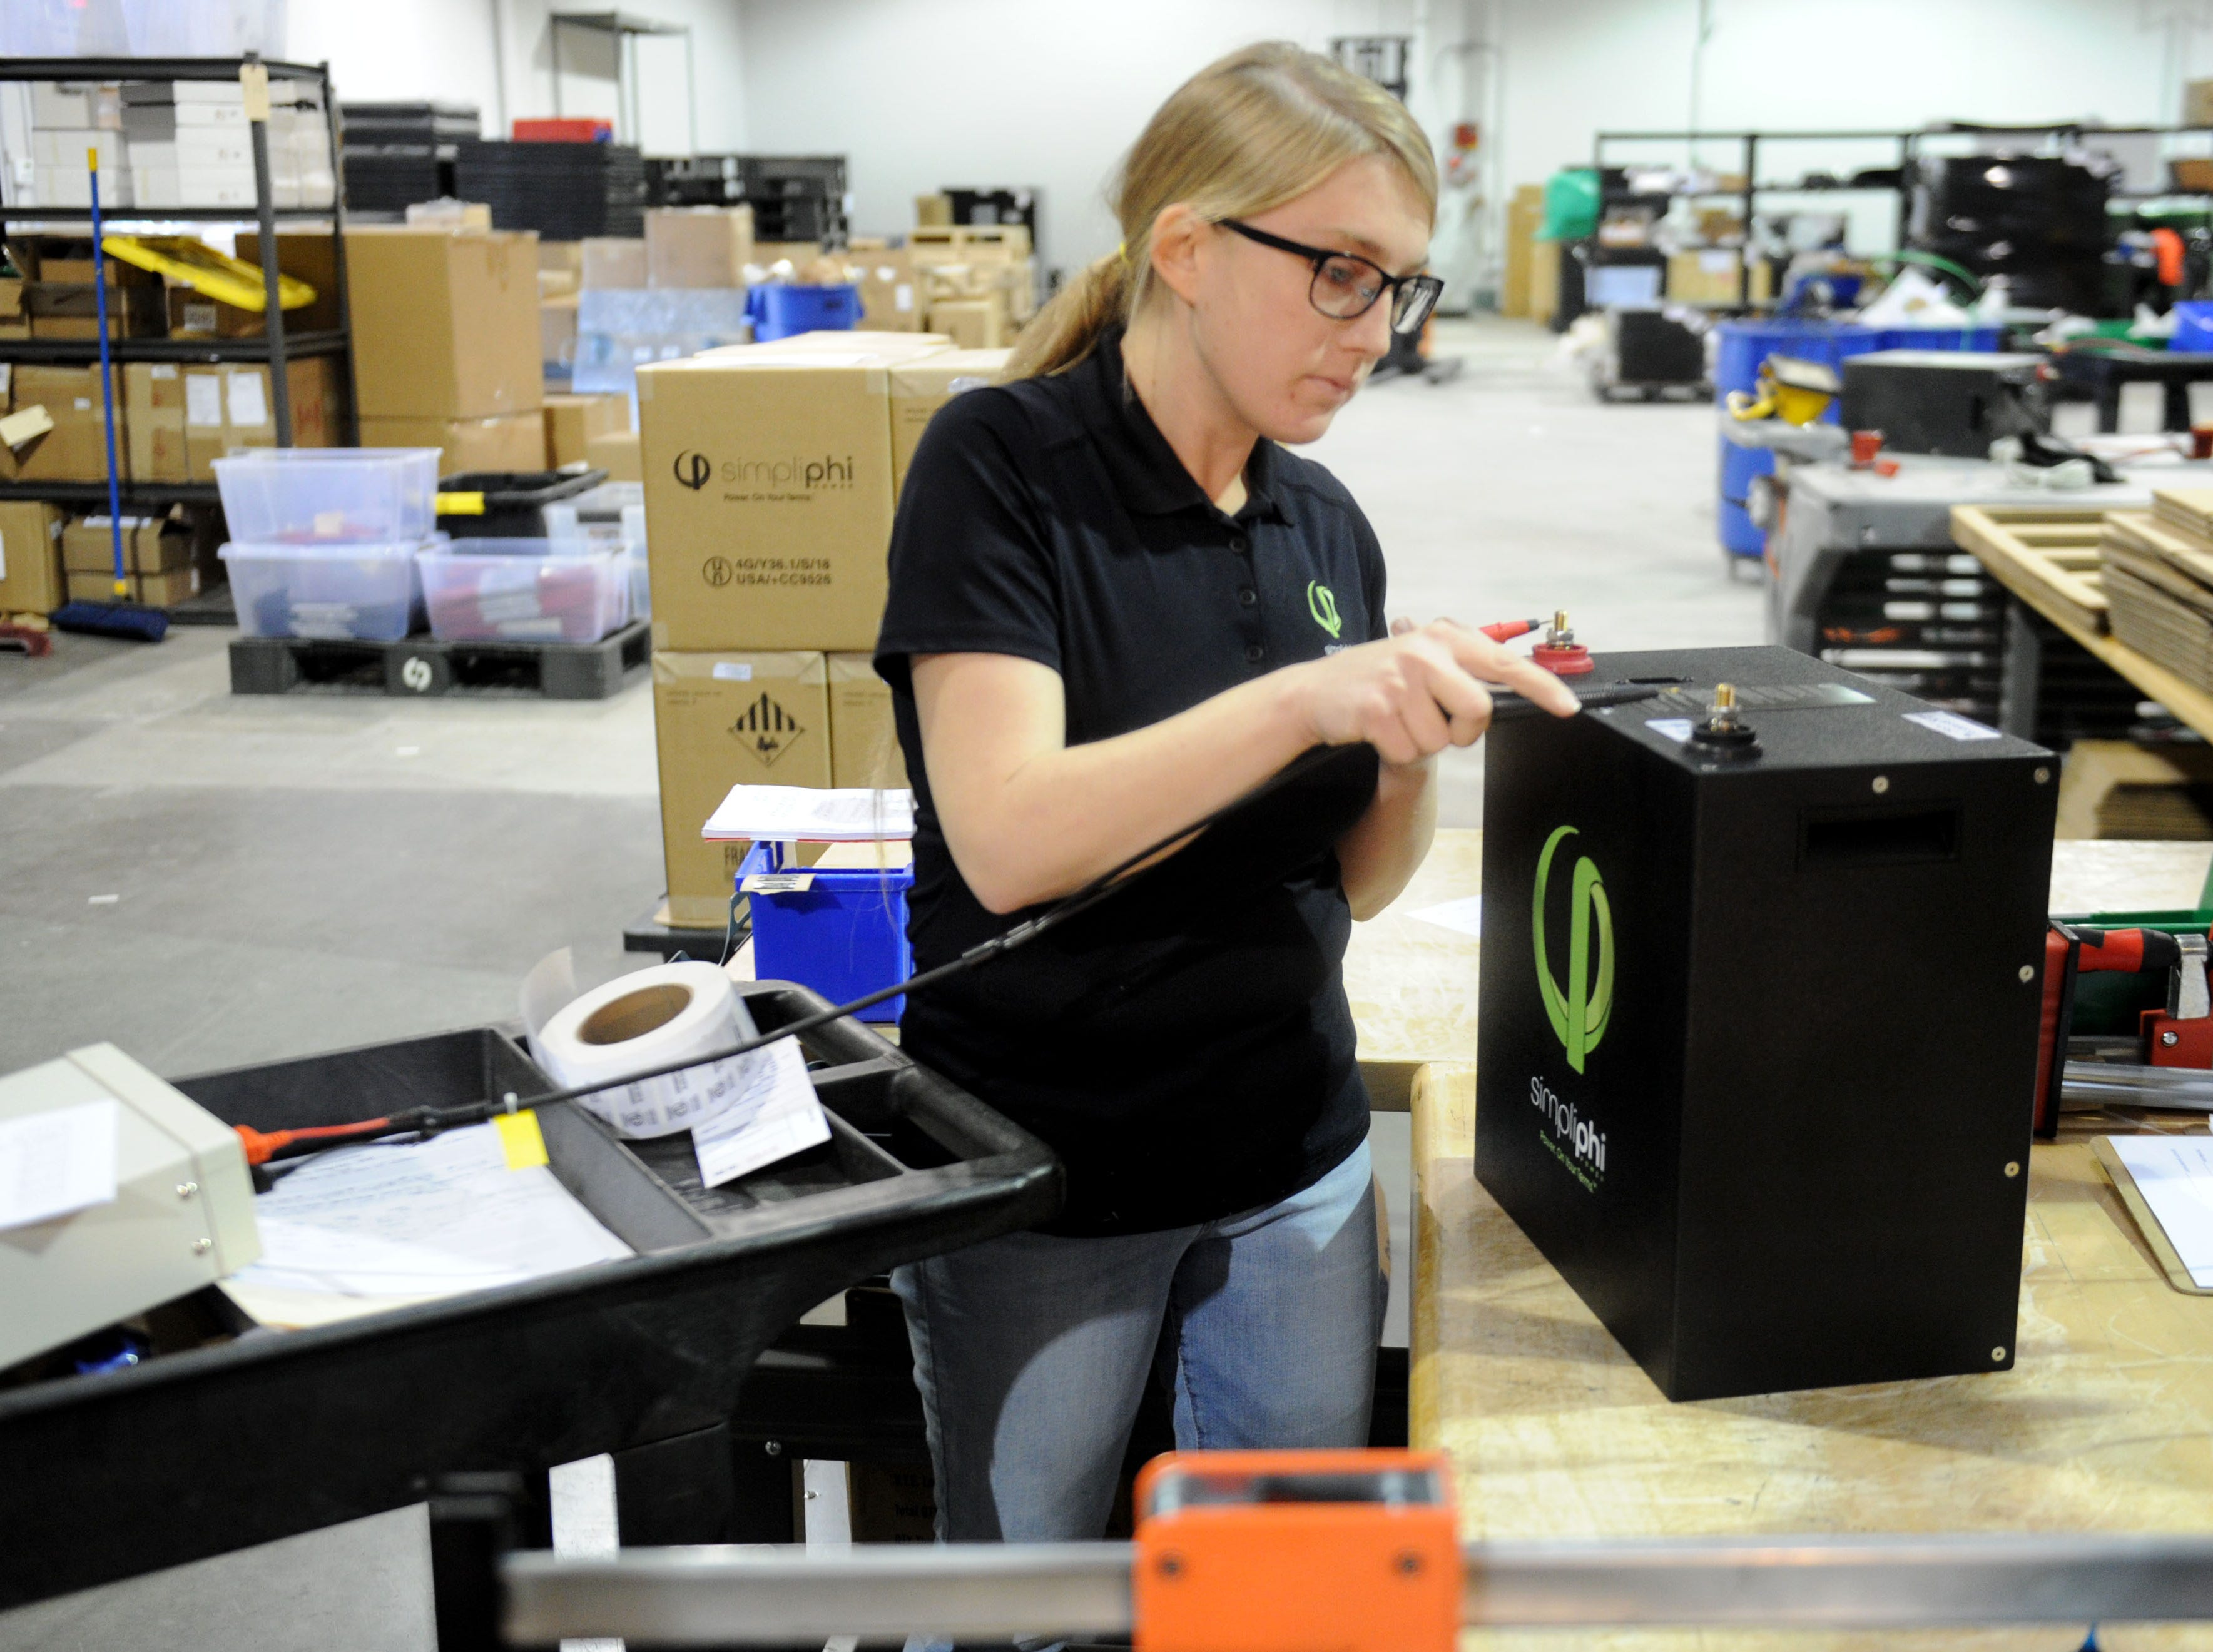 Cindy Bowhall, a manufacturing technician for SimpliPhi Power, checks the power on one of the batteries in the company's new manufacturing facility in Oxnard. The company's batteries are aimed at areas off the normal power grid or for use if the power grid fails.